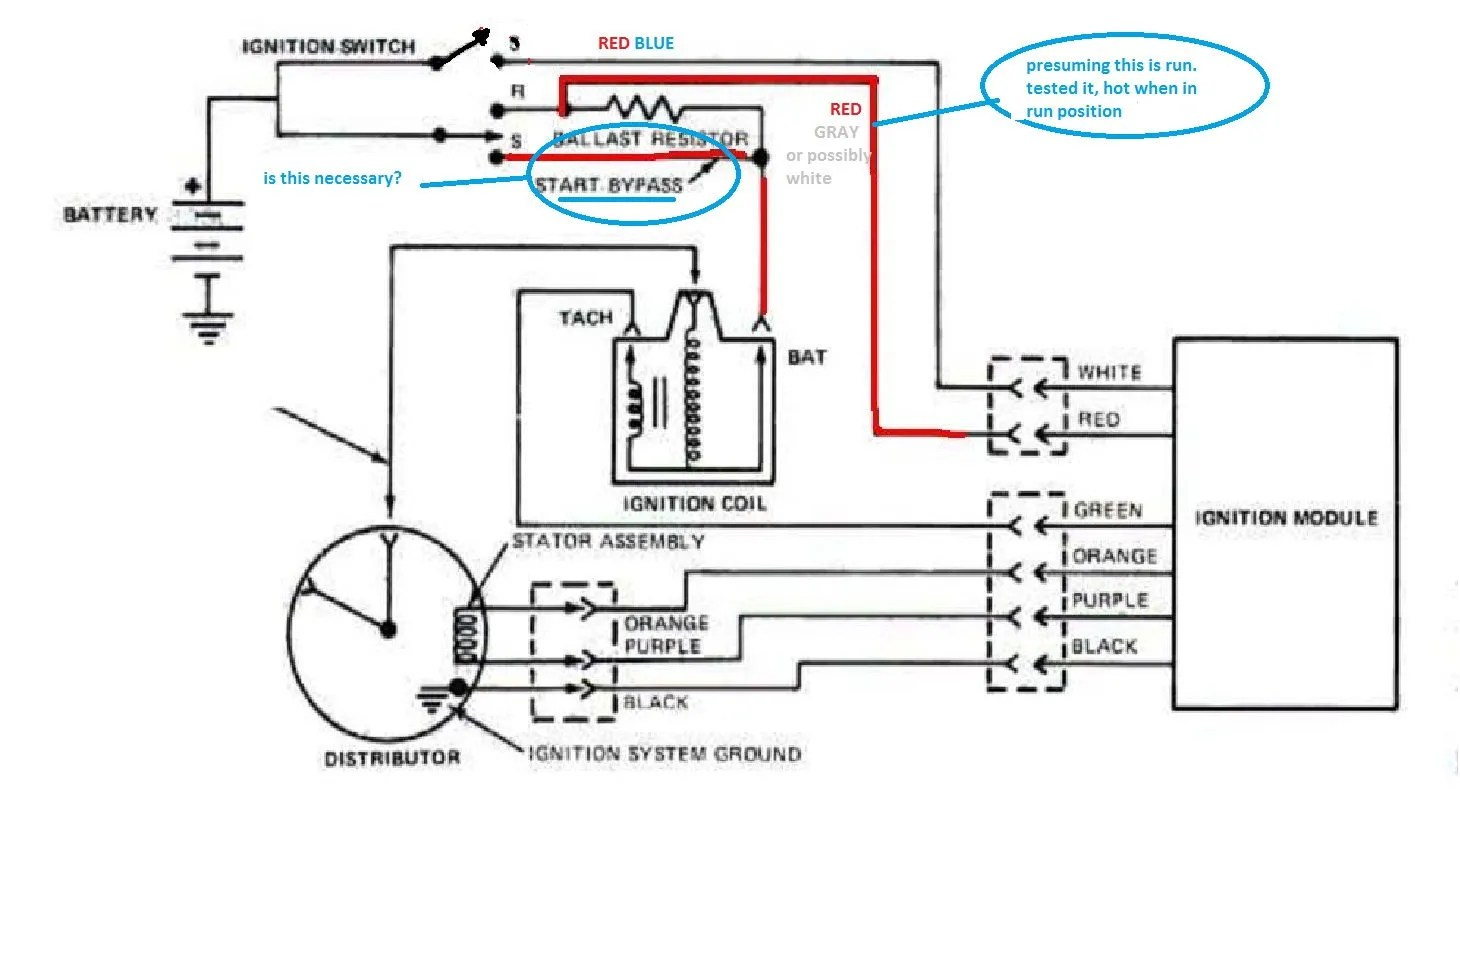 hight resolution of wiring diagram for crane ignition system crane motor 1977 ford f150 ignition wiring diagram 1979 ford ignition wiring diagram